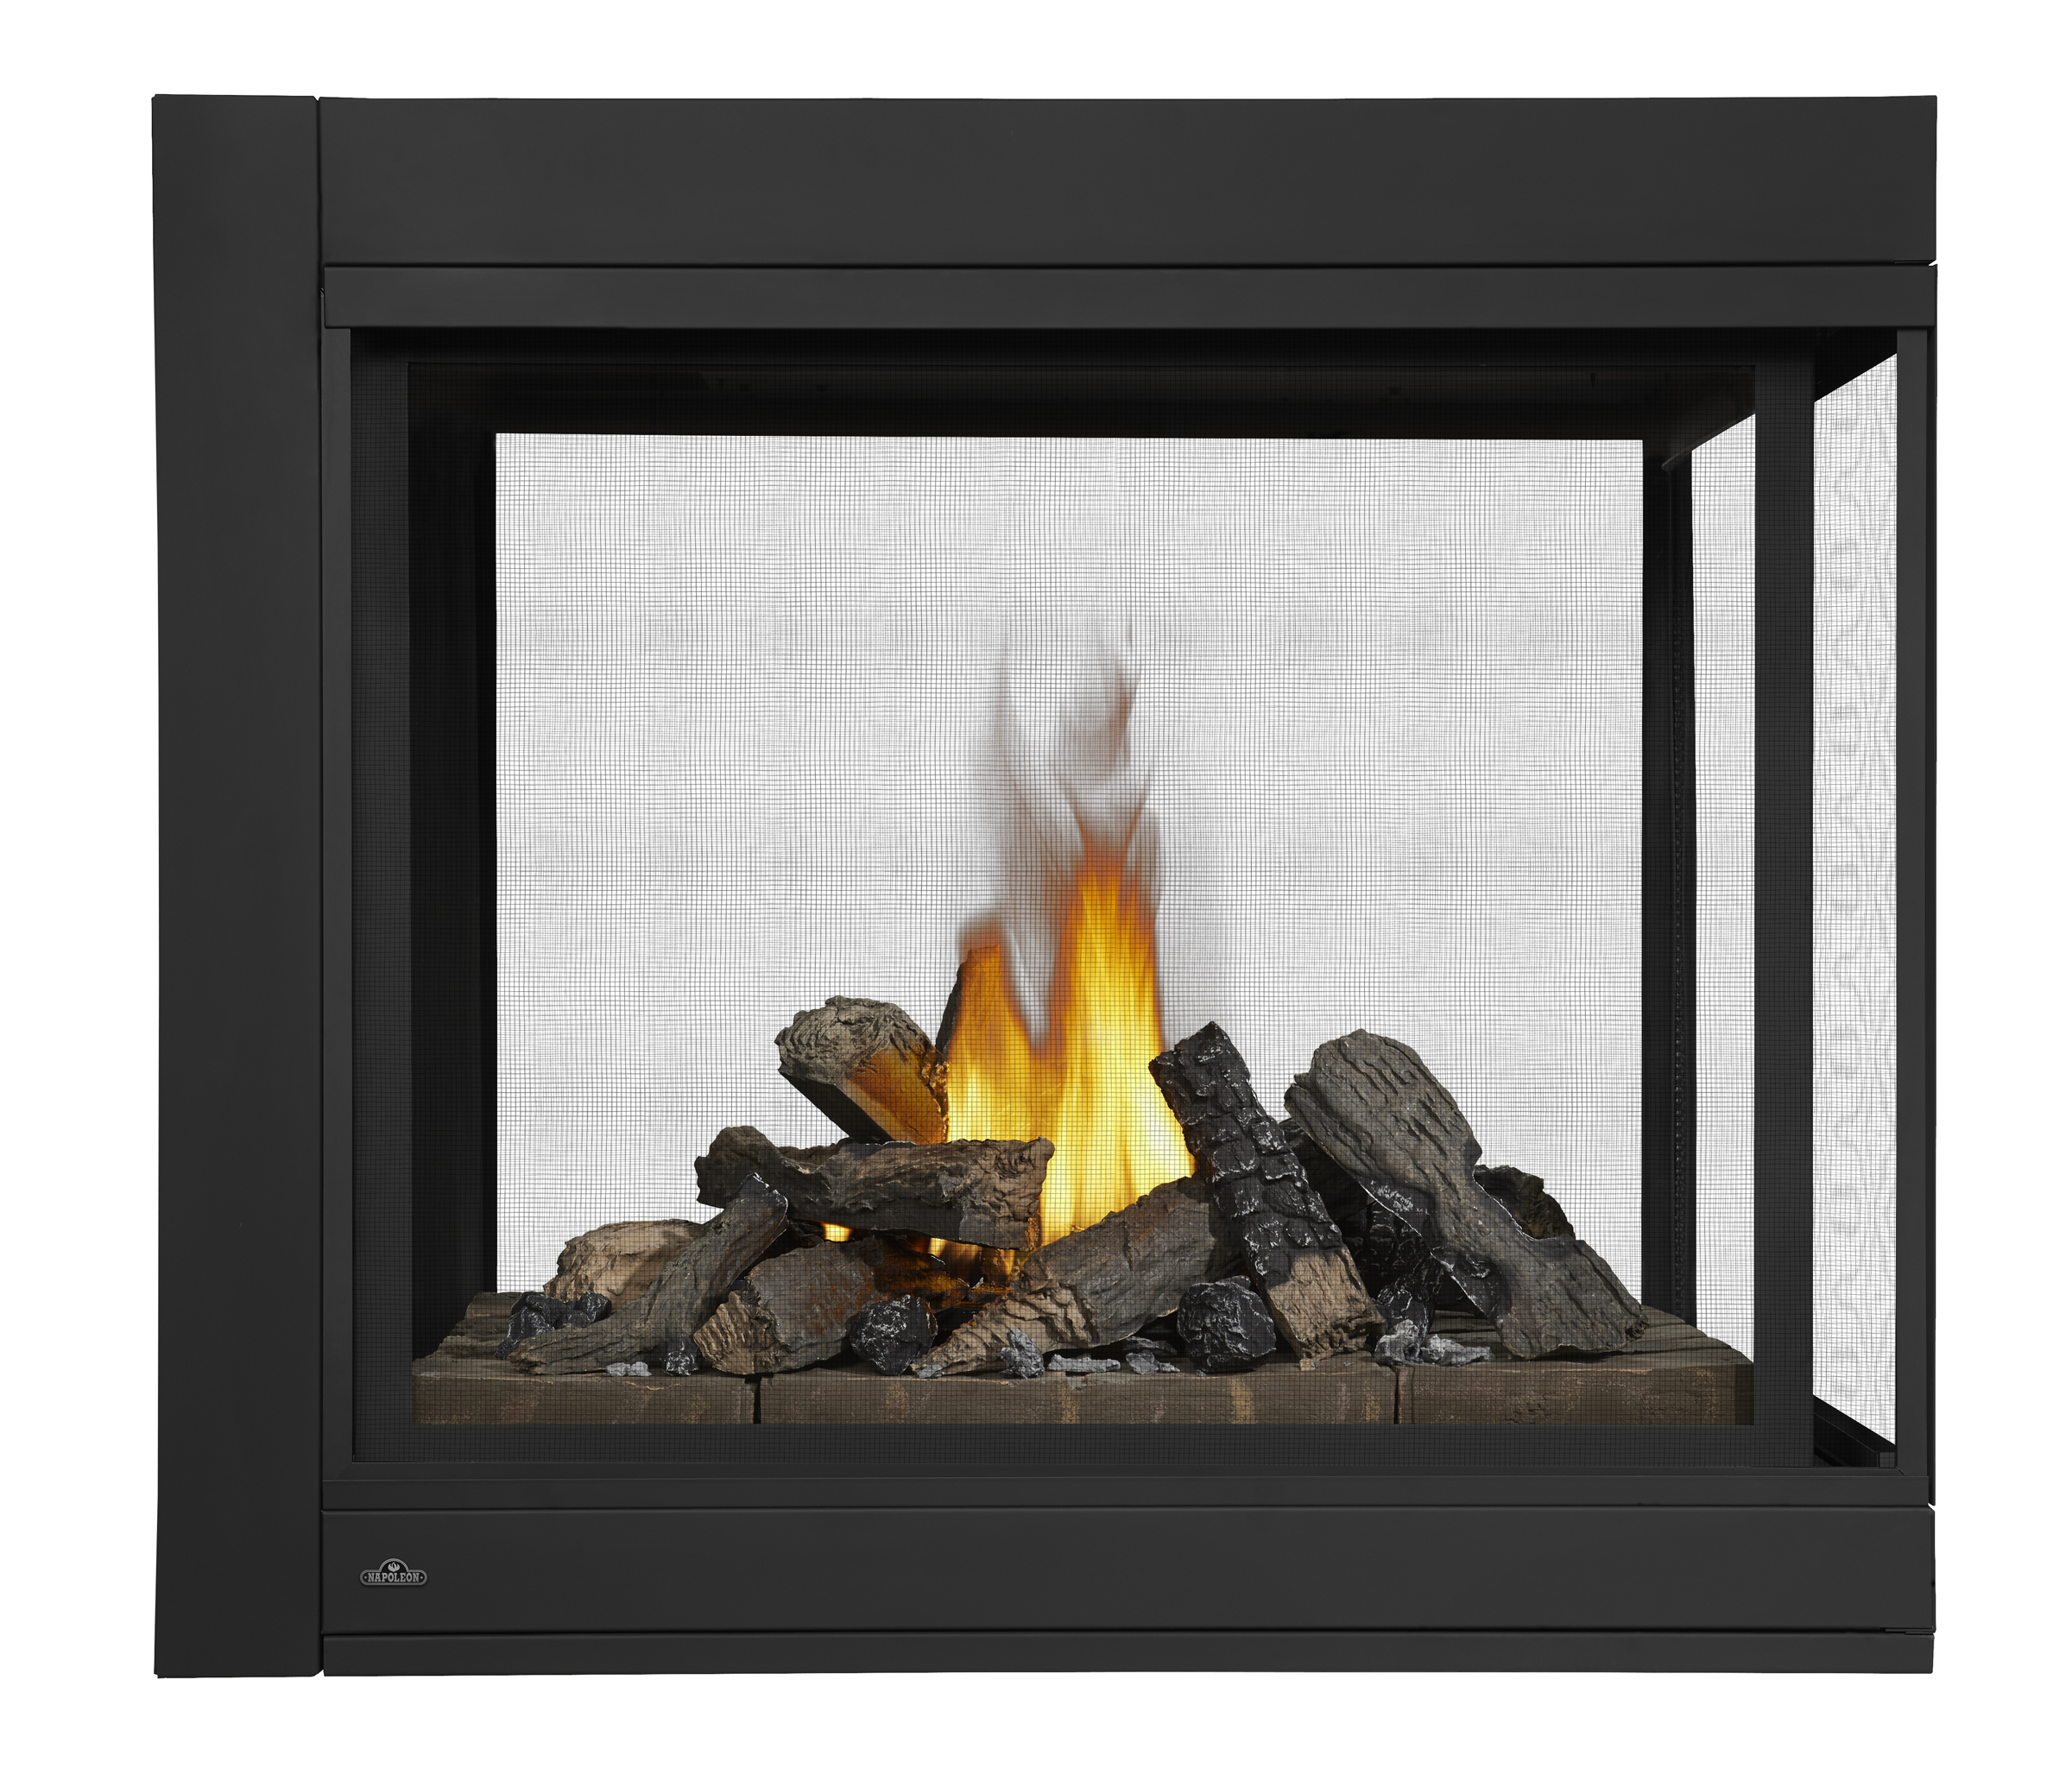 insert gas fireplace capecaves com fabulous natural about of diy aifaresidency